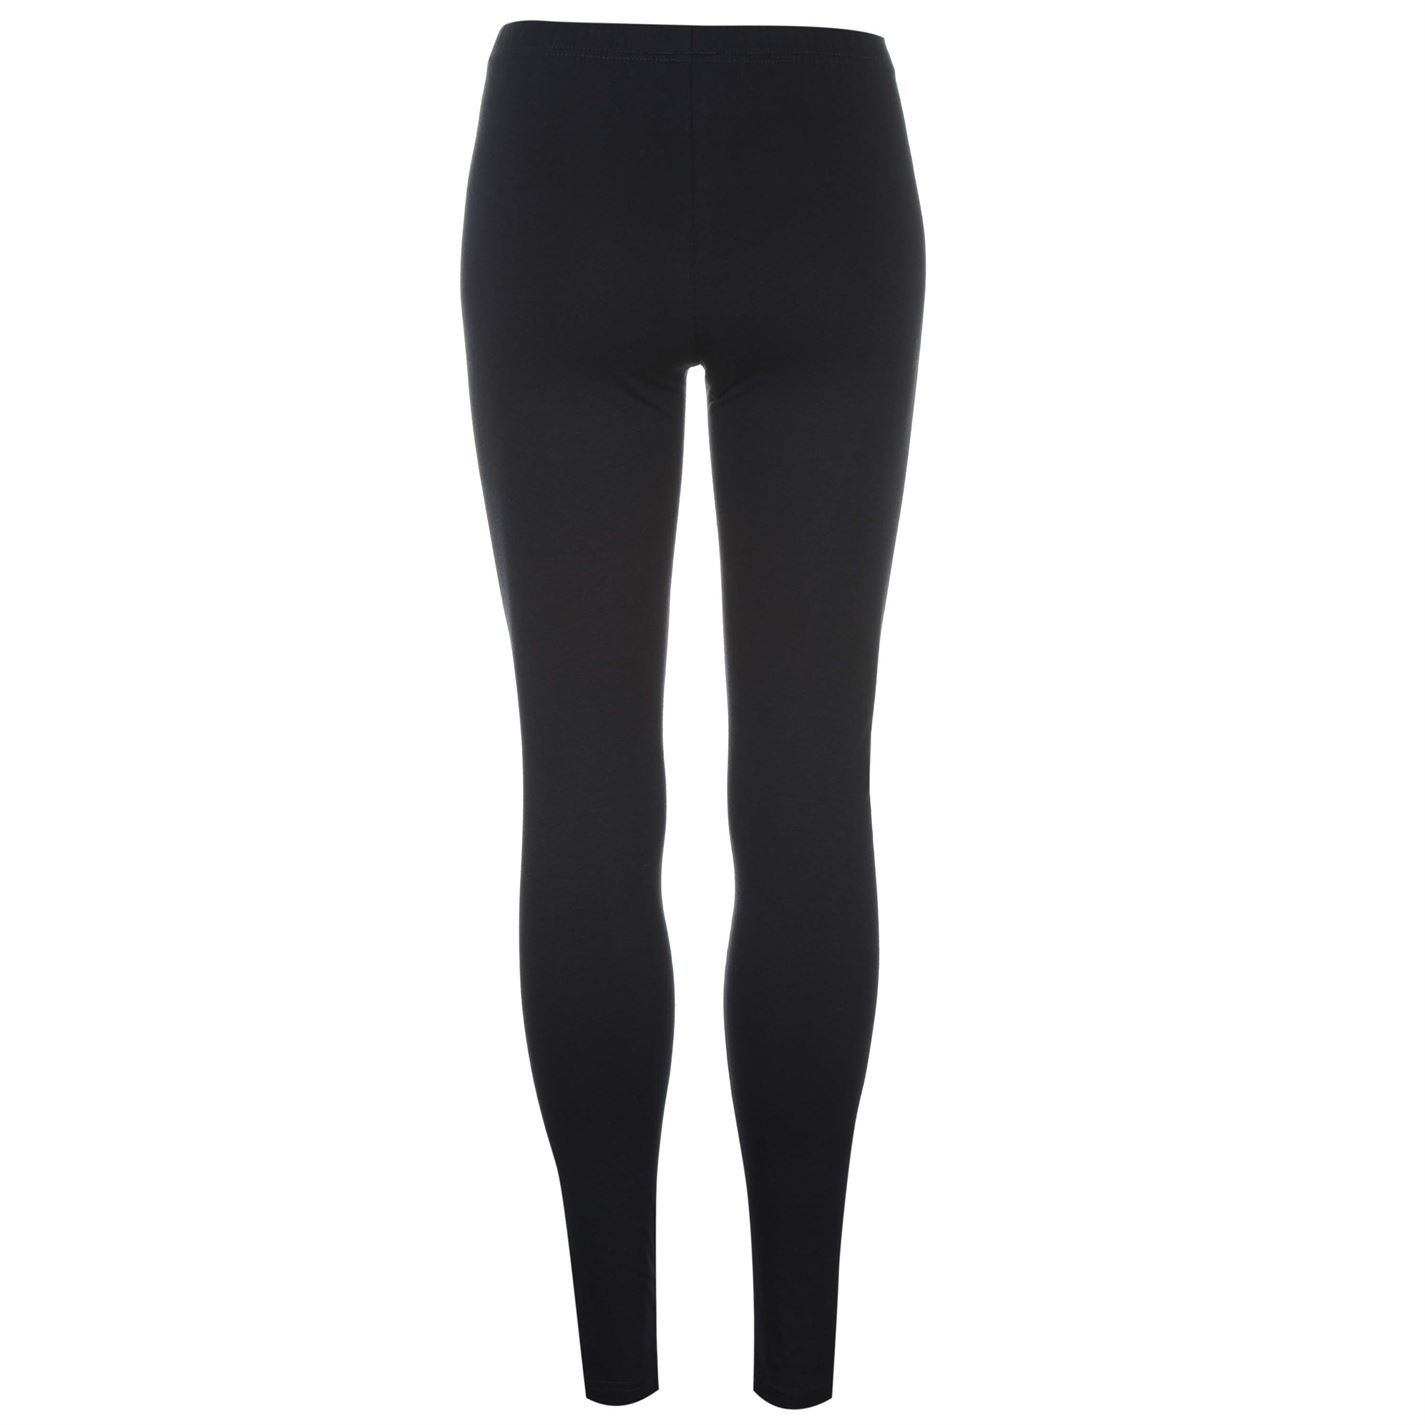 156b7dcab9 MISO Women's Leggings: Amazon.co.uk: Clothing